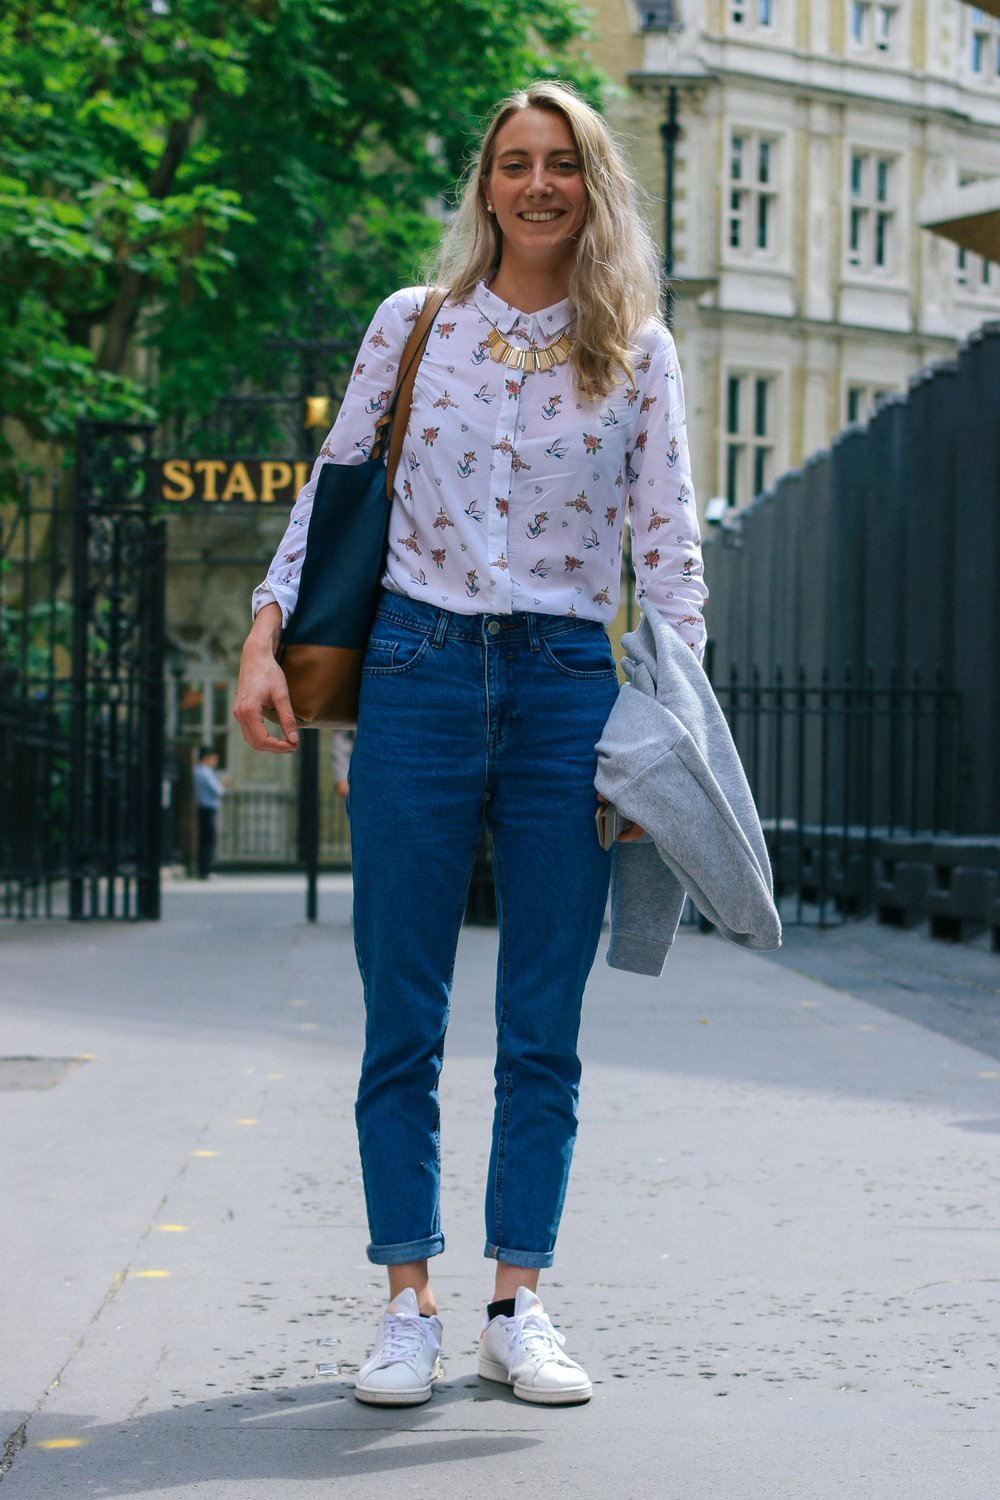 Street fashion stories_Imaginealady_jeans